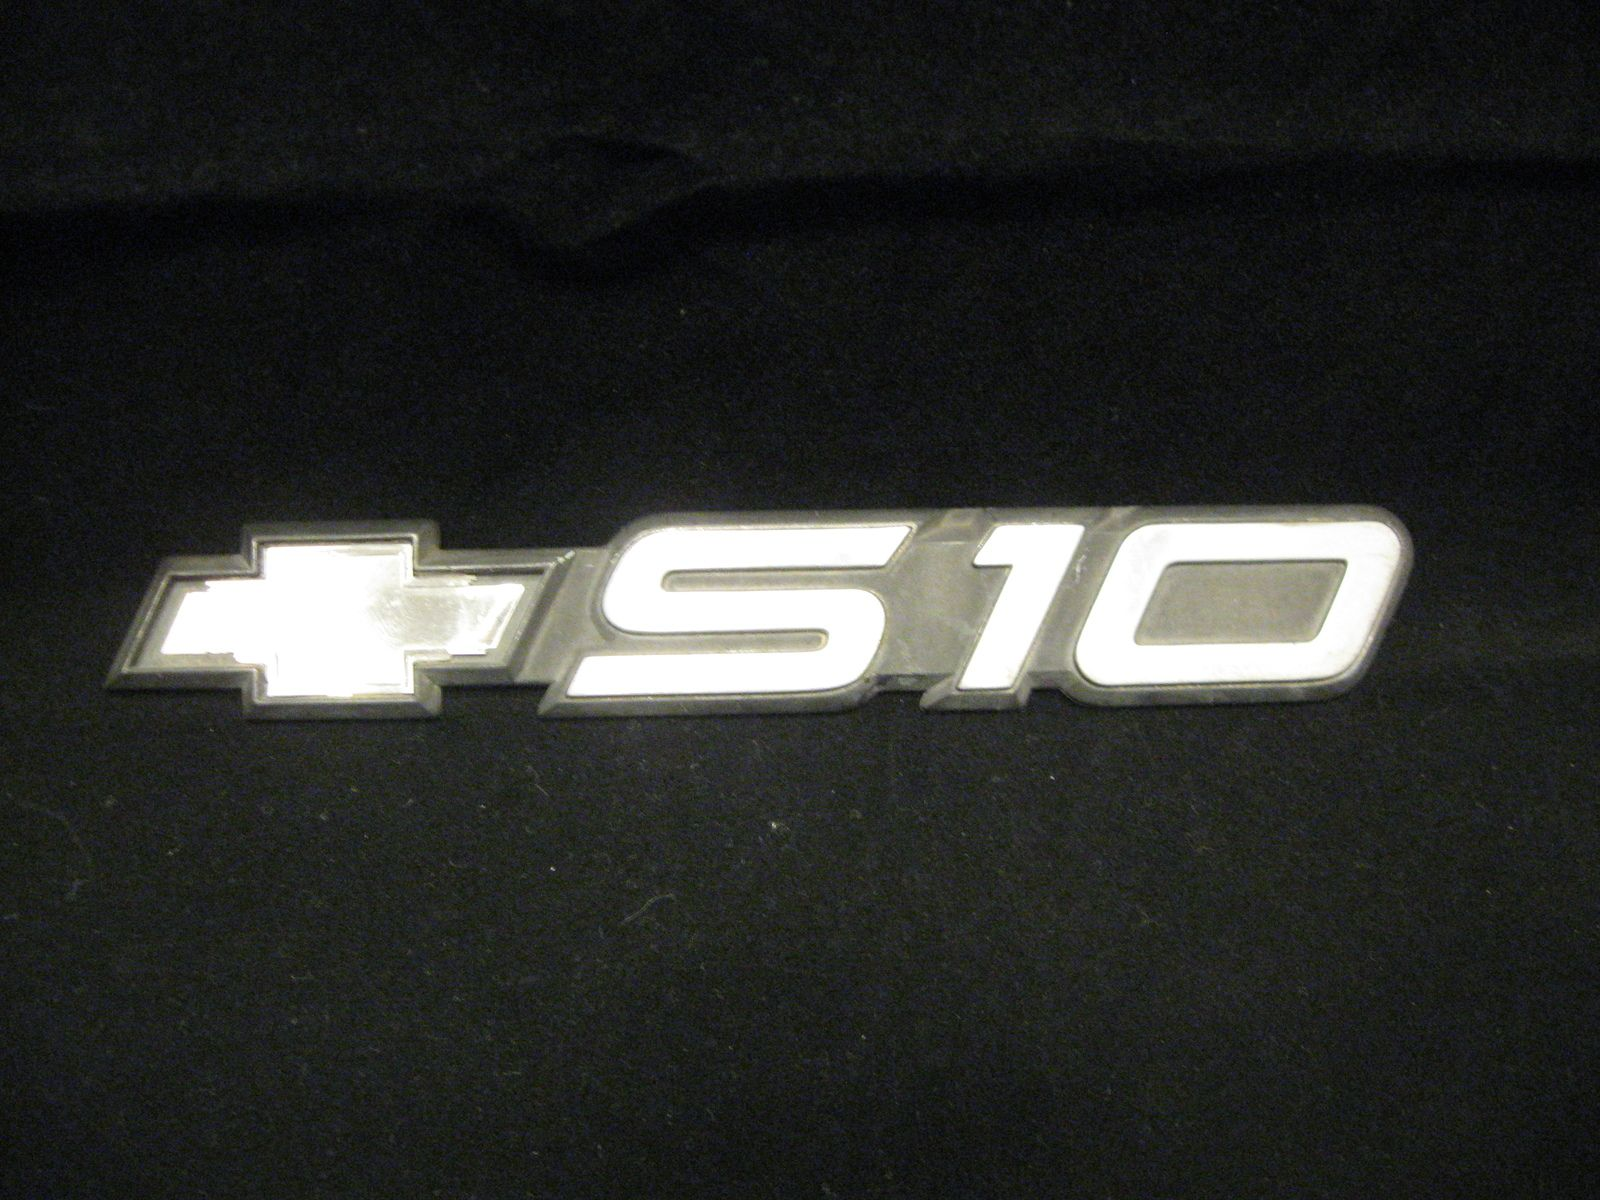 Door emblem for 1991-1993 Chevrolet S-10 pickup trucks. #chevrolet #chevy #s10 #pickup #emblem #bonanza